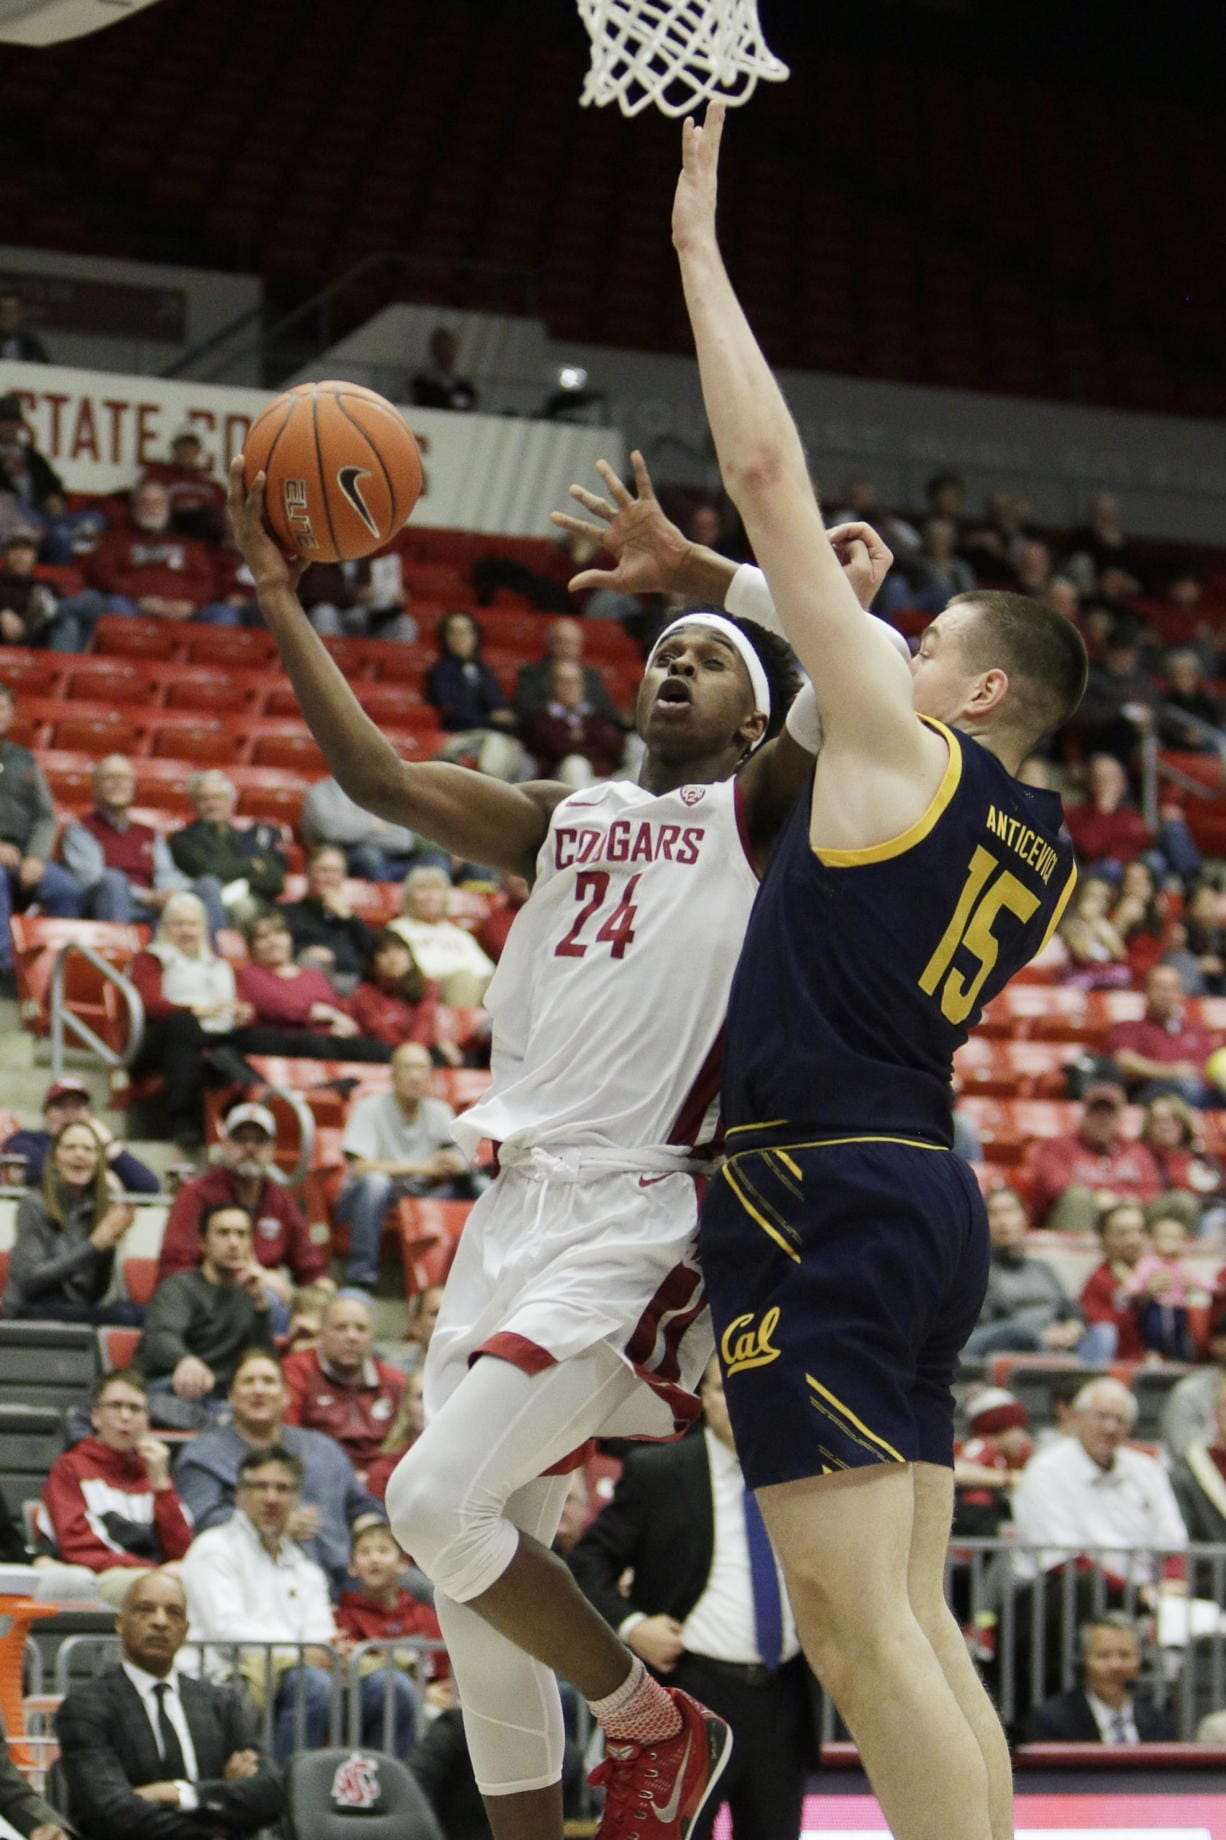 Washington State guard Noah Williams (24) is fouled by California forward Grant Anticevich (15) on a drive to the basket during the first half of an NCAA college basketball game in Pullman, Wash., Wednesday, Feb. 19, 2020.